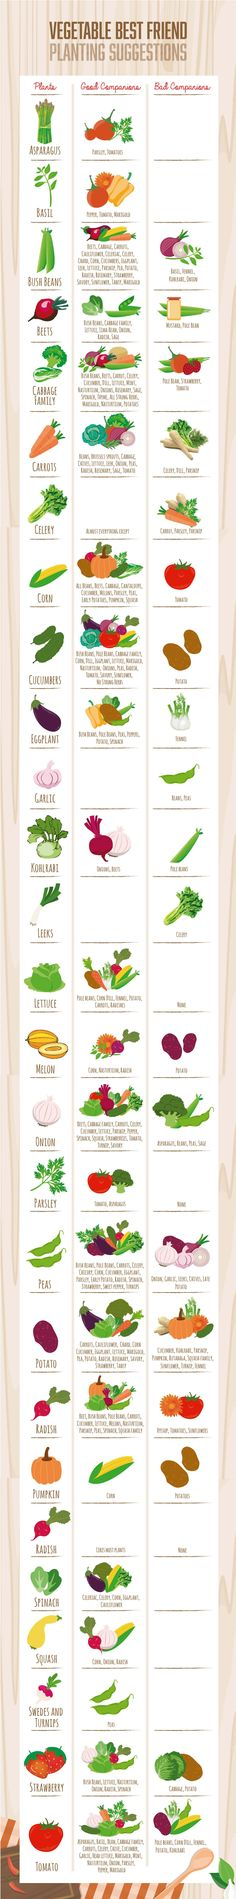 Companion Planting Visual Companion Planting Chart (Guide) - Are you vegetables lonely in the garden? Use this handy visual companion planting chart to help you with your gardening design this year! Veg Garden, Edible Garden, Garden Plants, Vegetable Gardening, Fruit Garden, Vegetable Design, Vegetable Ideas, Vegetable Bed, Backyard Plants